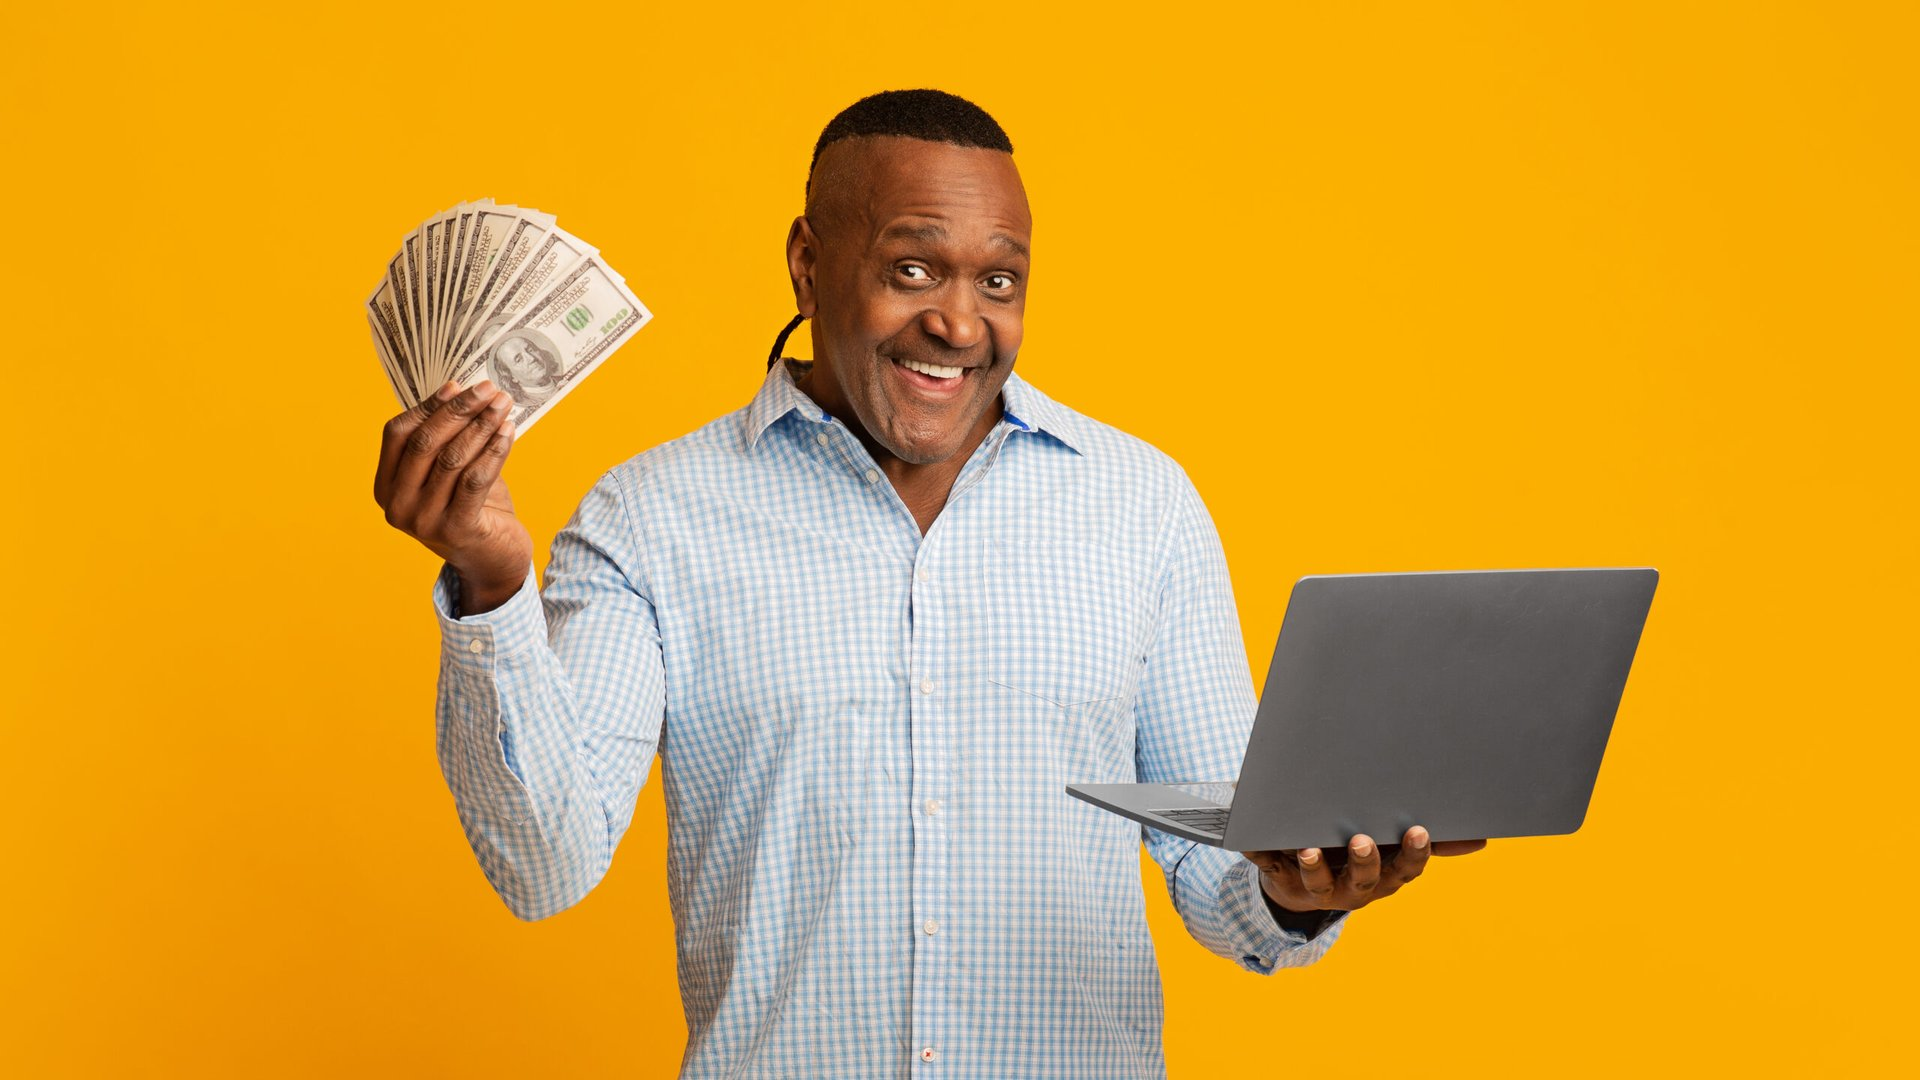 Excited man holding cash and a laptop computer